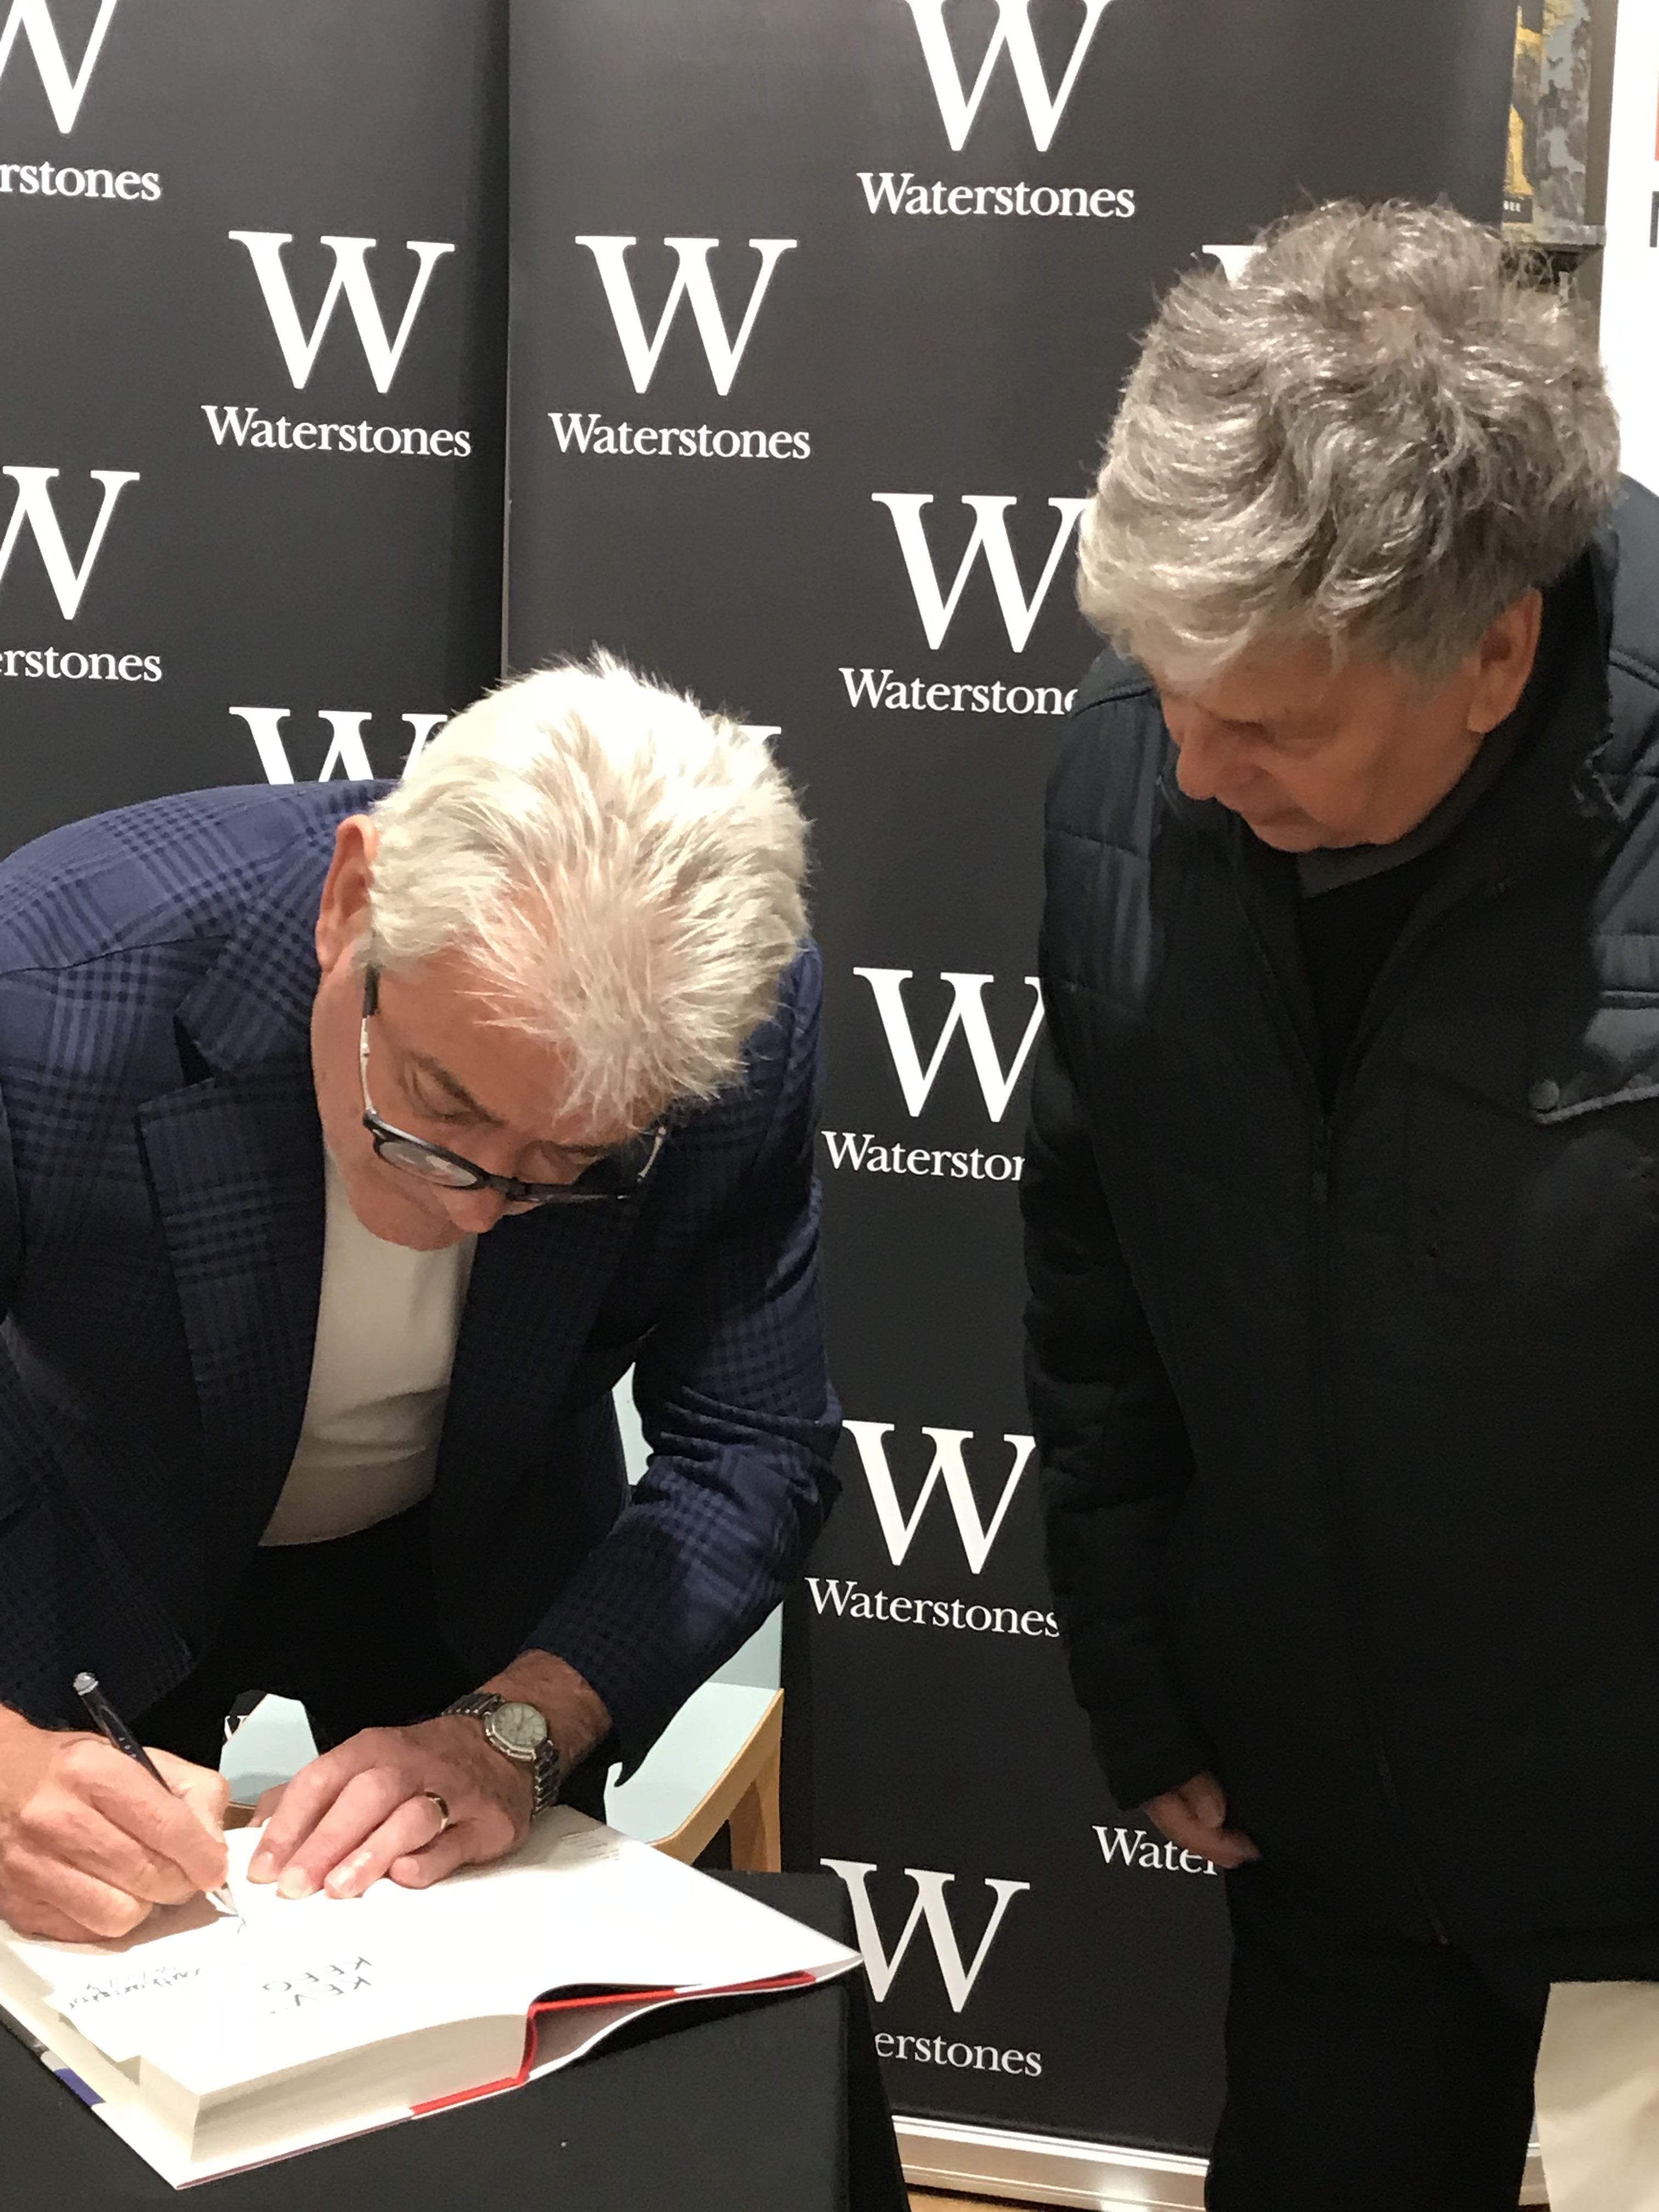 Tony Knight meets Kevin Keegan after almost 30 years.